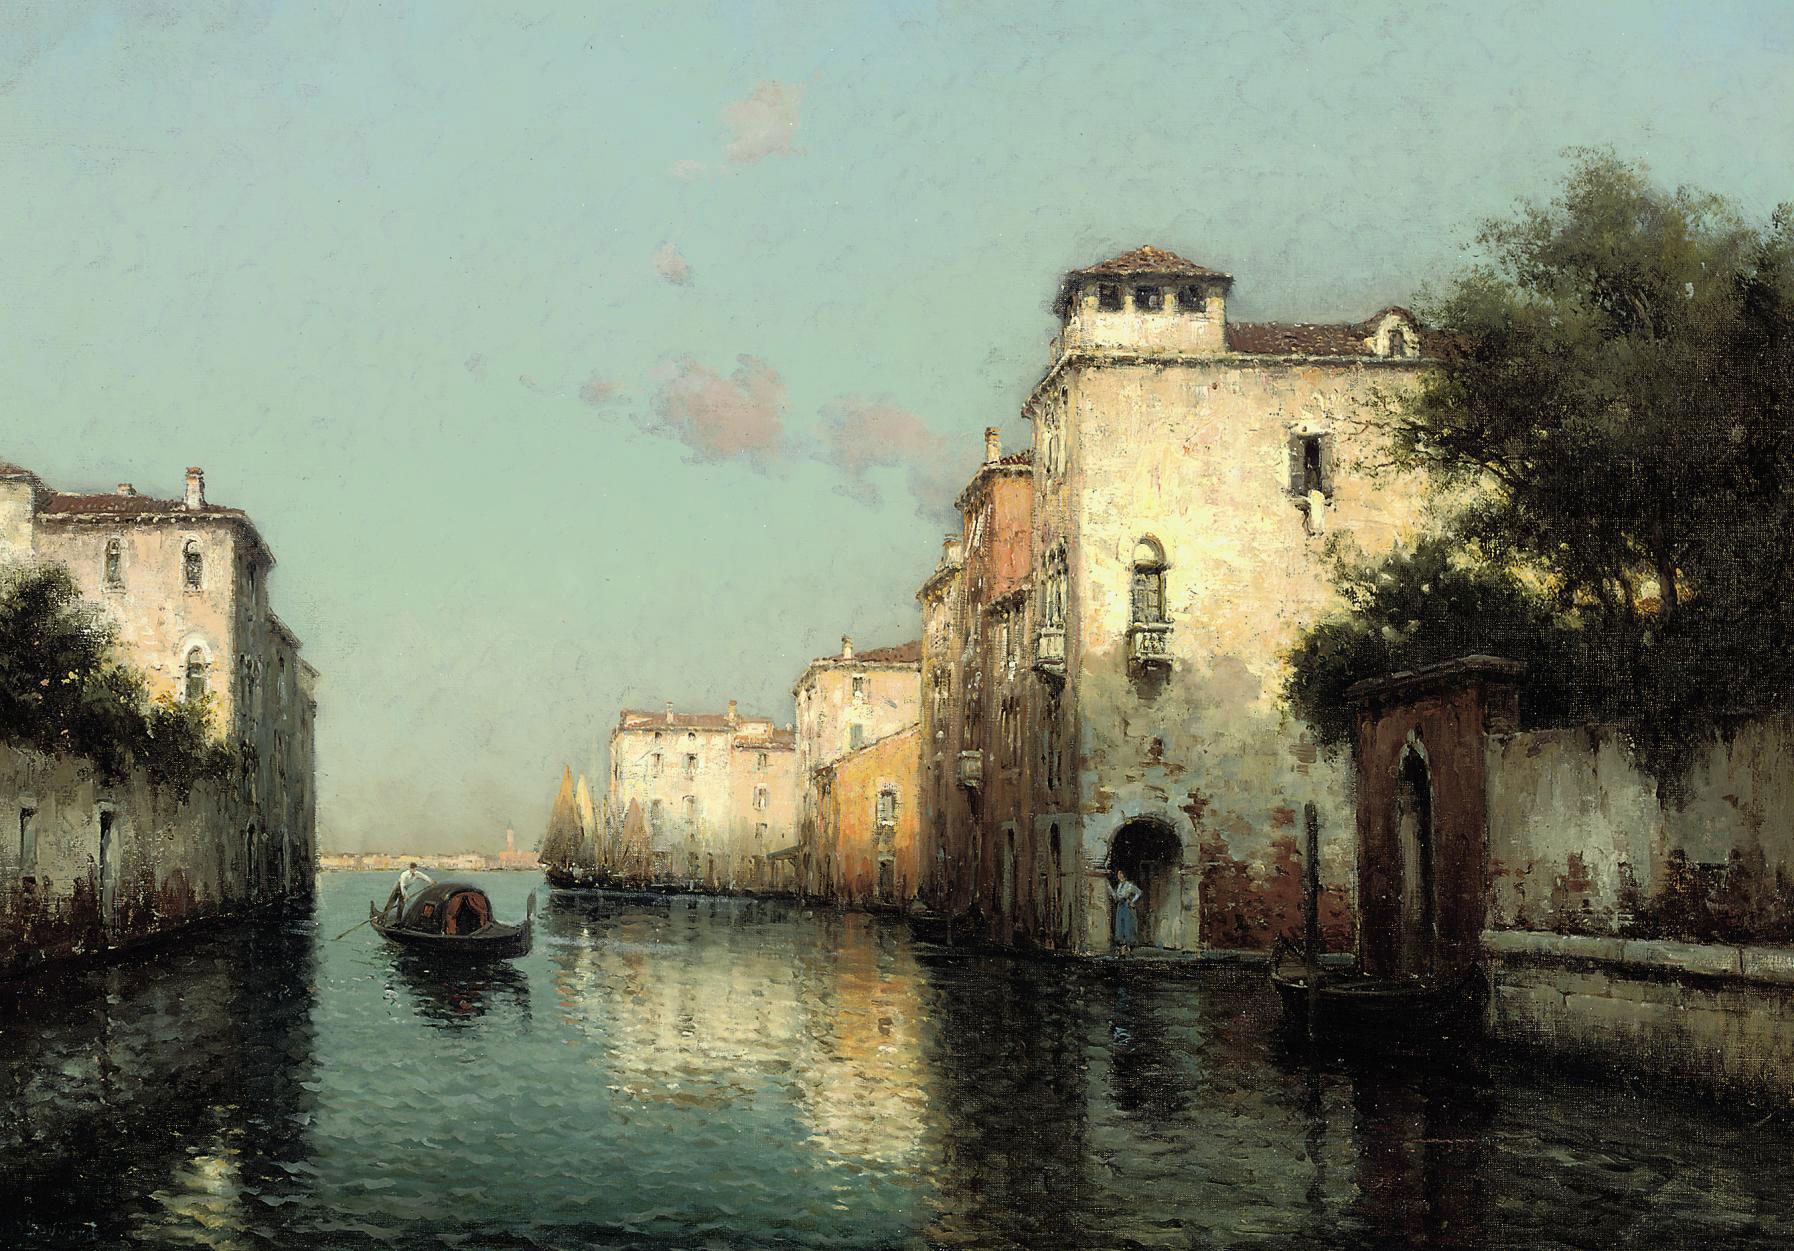 A GONDOLIER ON A VENETIAN BACKWATER, THE CAMPANILE IN THE DISTANCE